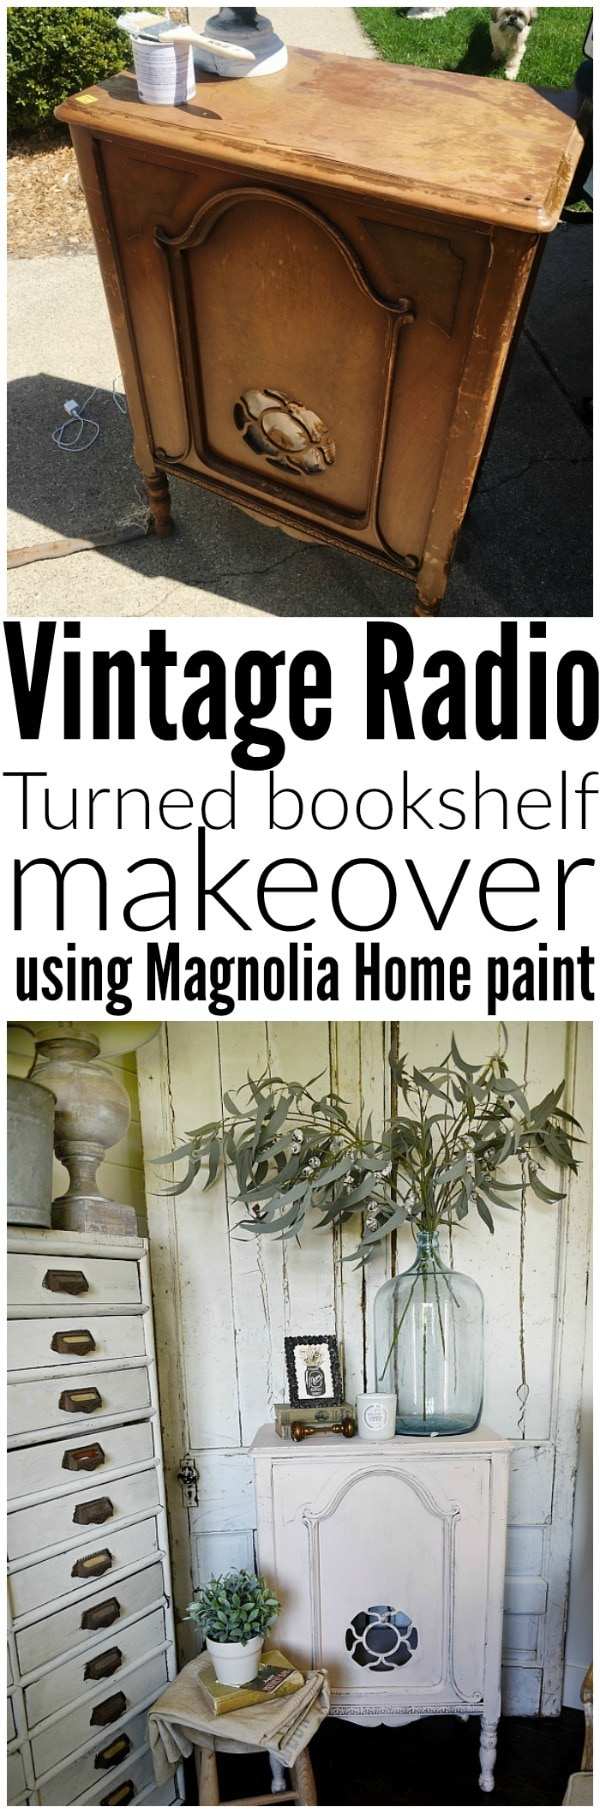 Magnolia Home Antique Rose Bookshelf Makeover